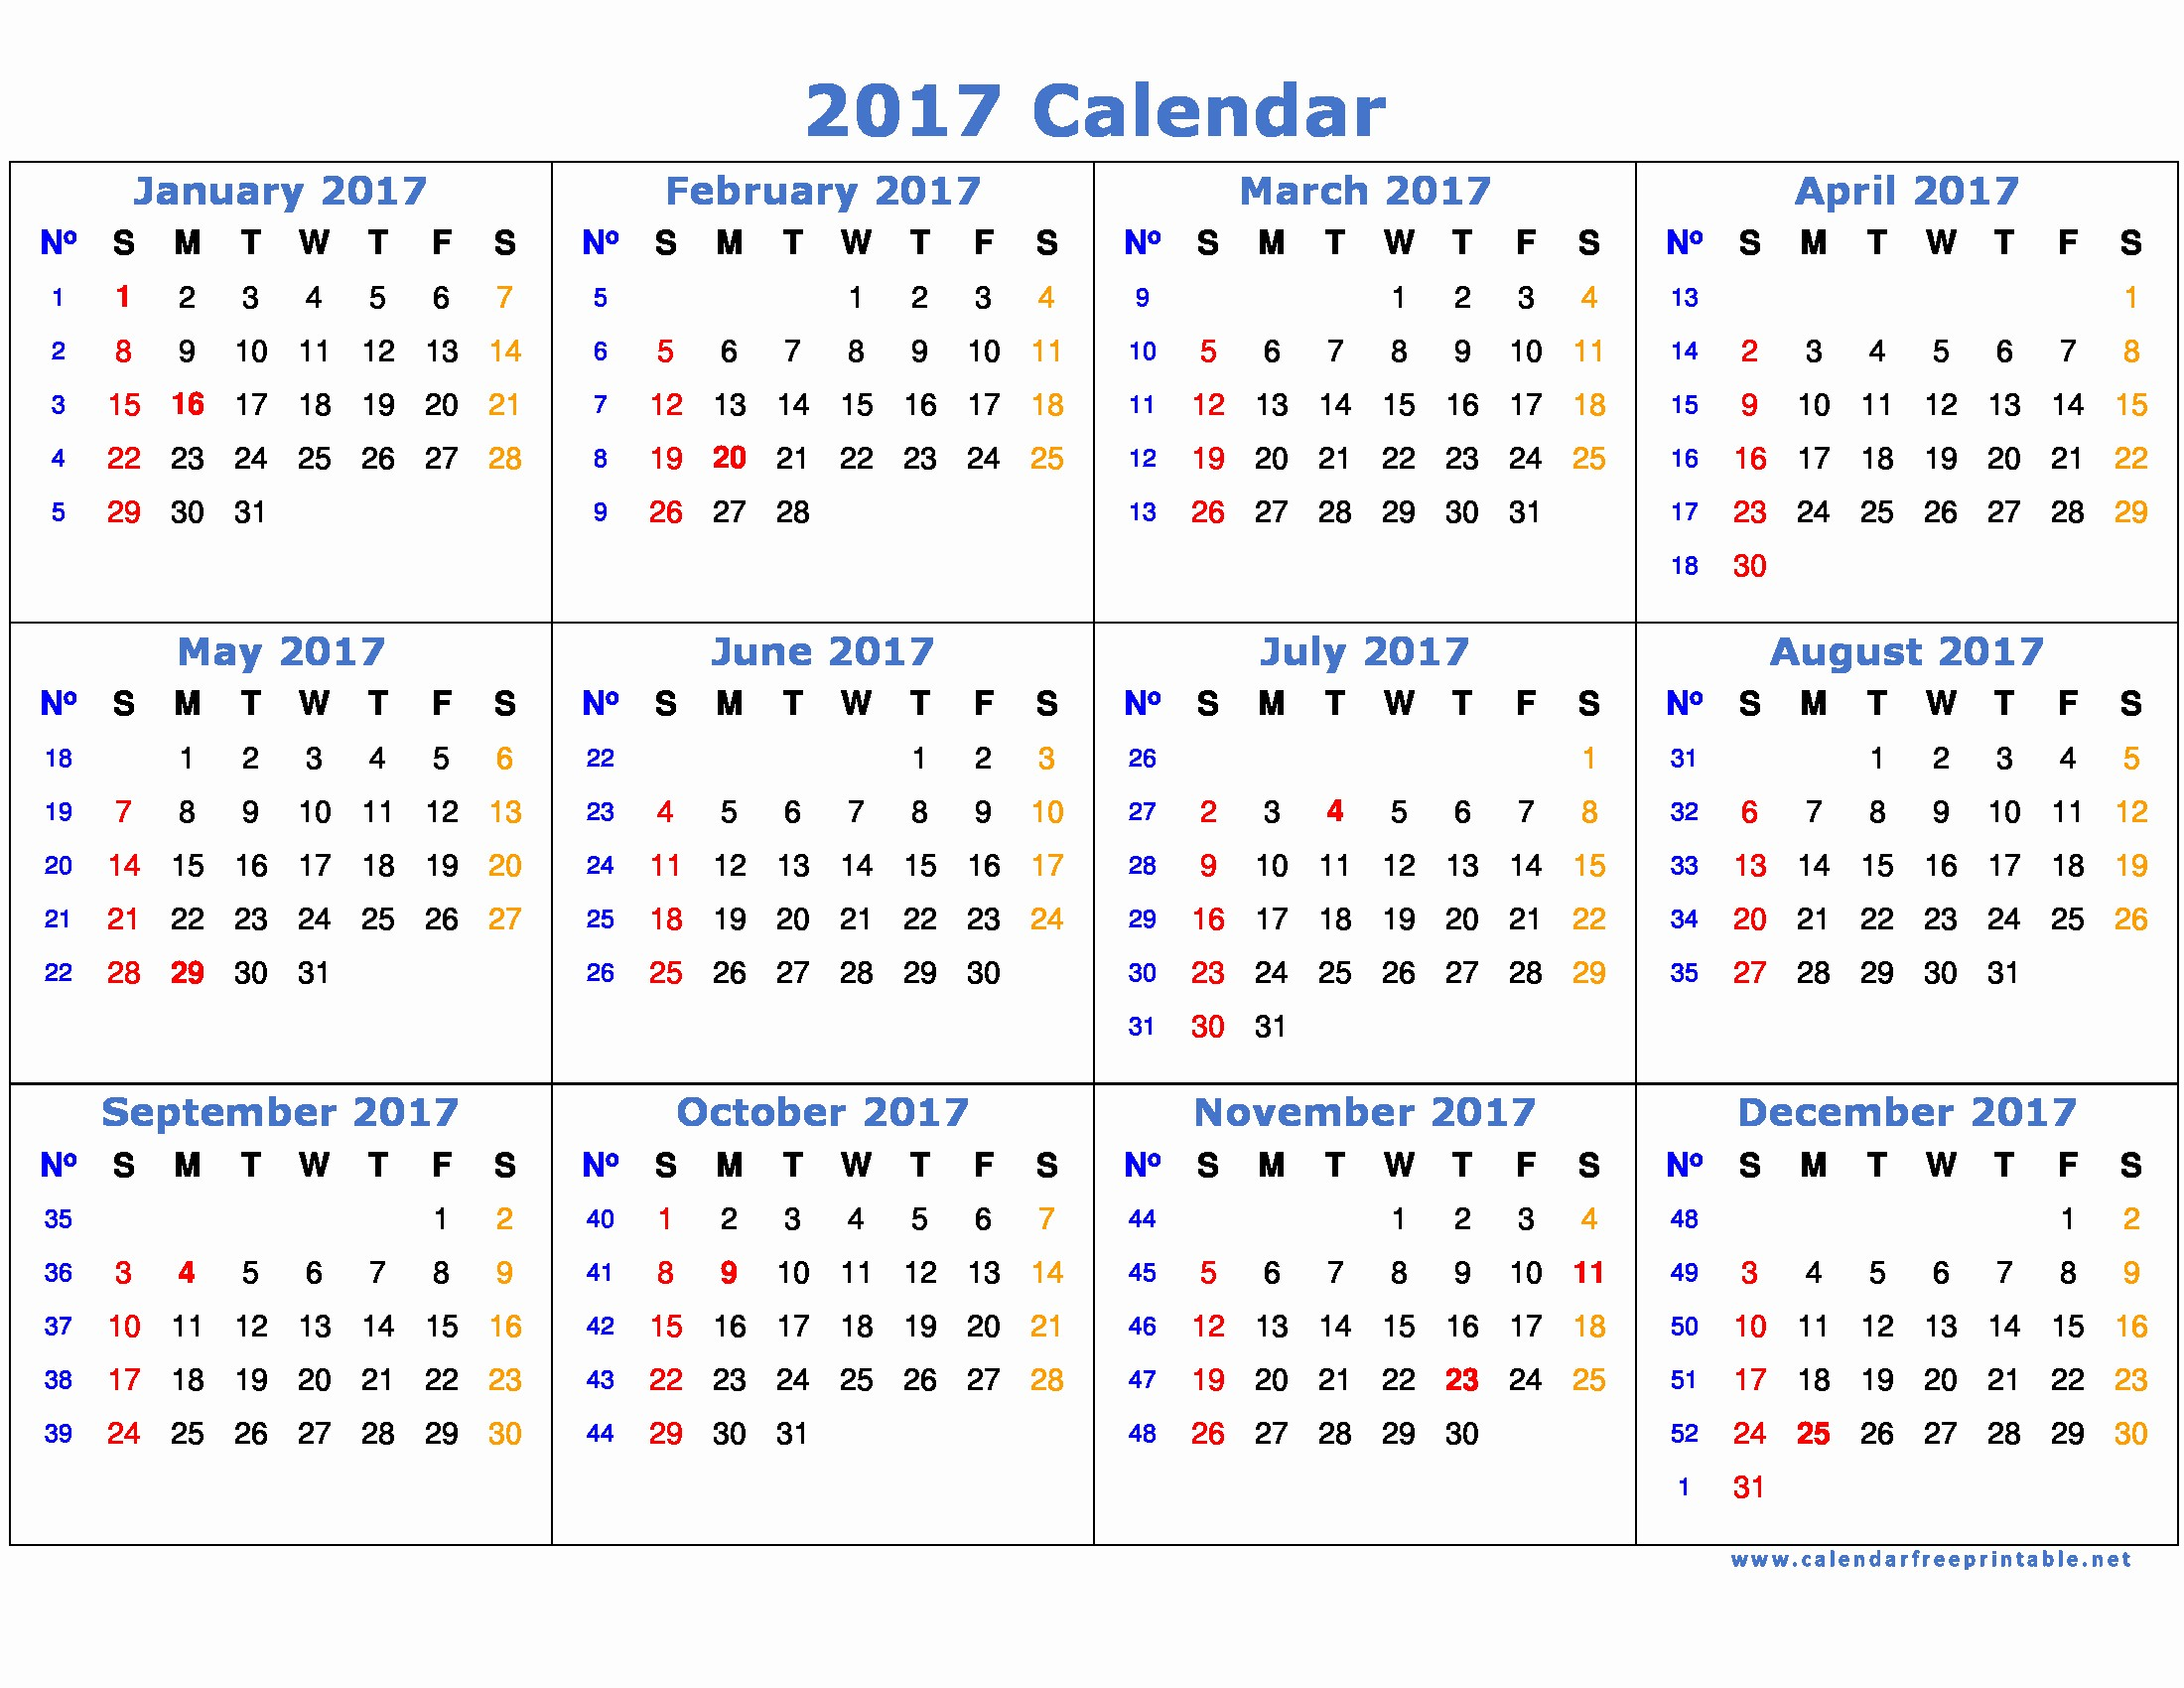 Free Printable Annual Calendar 2017 Beautiful 2017 Calendar Printable